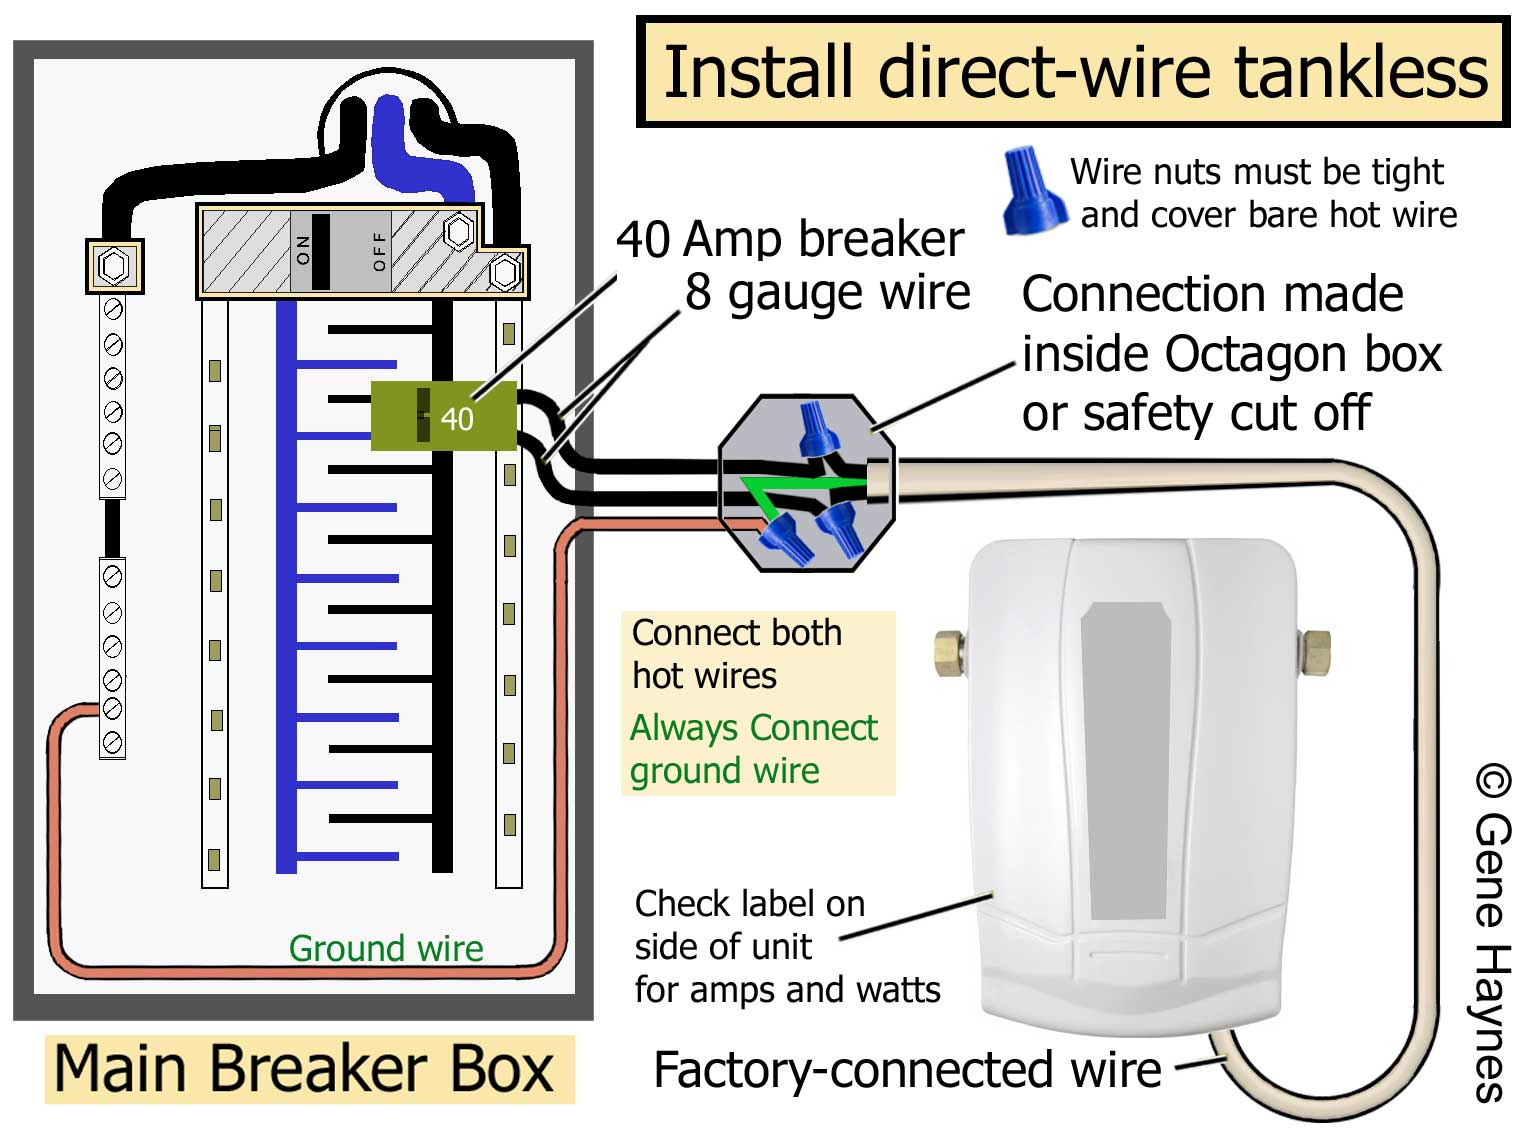 larger image, factory-connected wire/ or pigtail attached to tankless  read  rating plate on side of unit for amps and watts